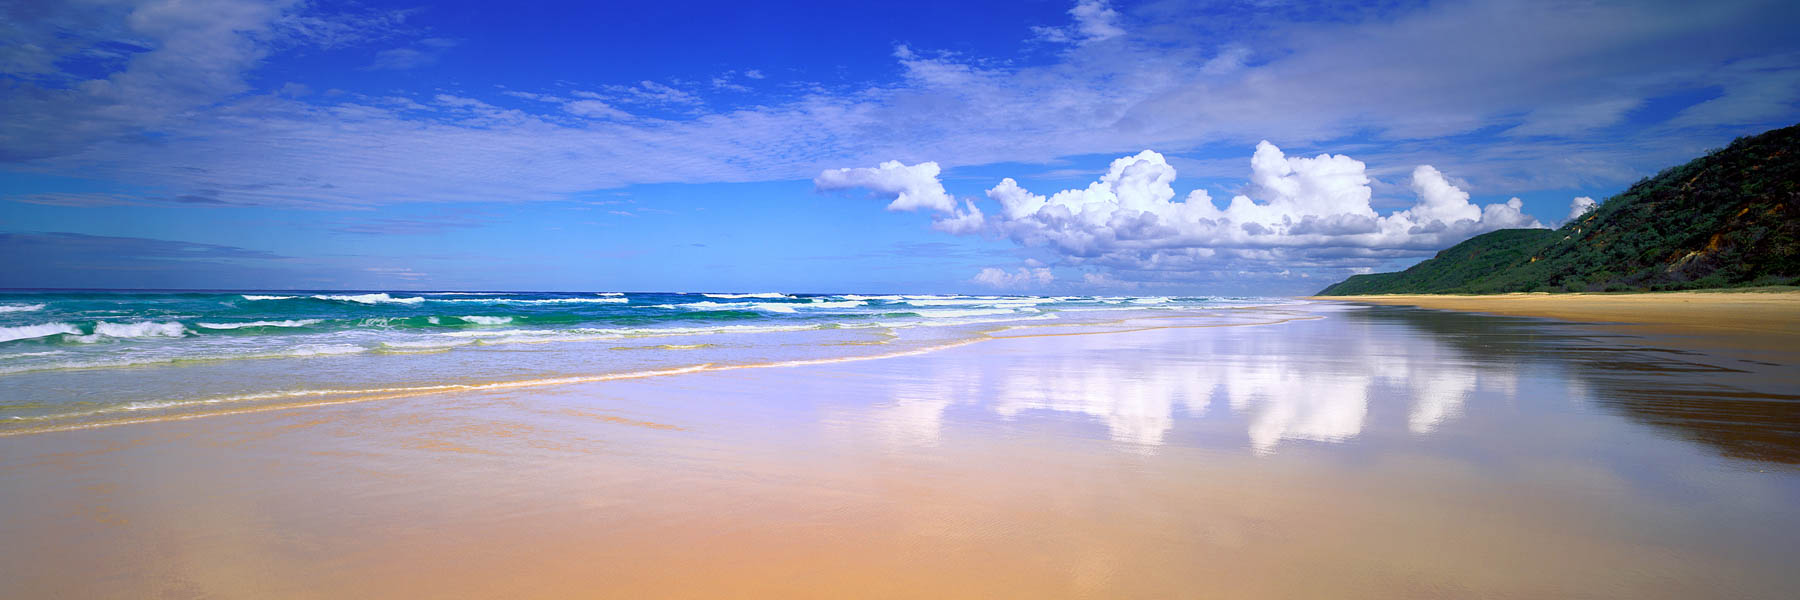 Blue skies and puffy clouds over Seventy Five Mile Beach, Fraser Island, Qld, Australia.